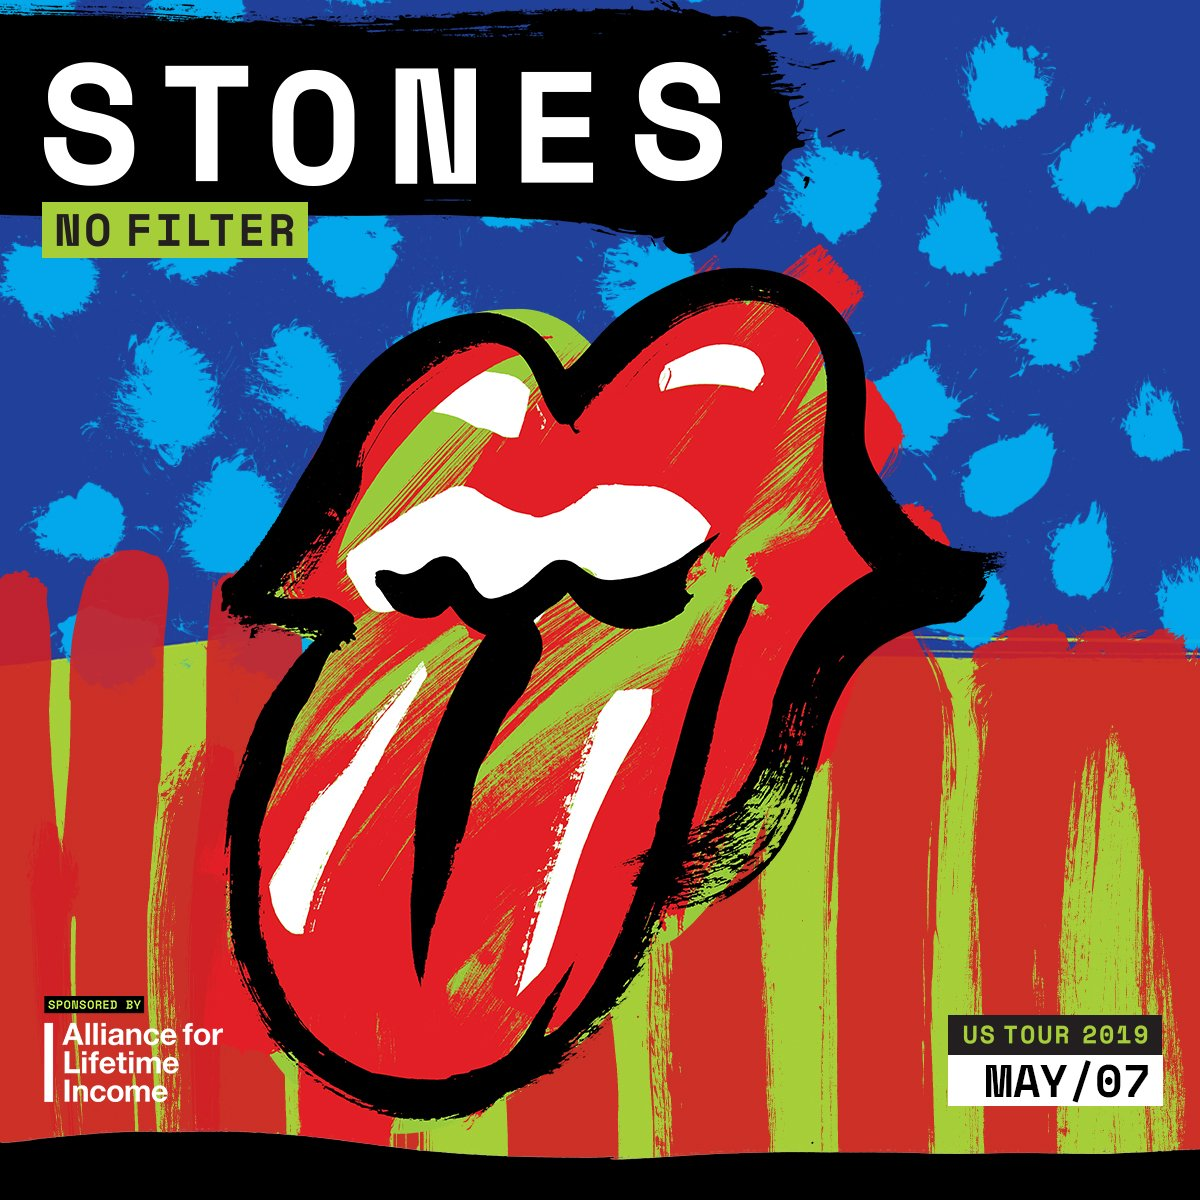 Arizona -- for the first time in more than a decade please welcome The @RollingStones!   RT for a chance to win 2 tickets to attend the No Filter U.S. Tour on May 7 at @StateFarmStdm.   Satisfaction guaranteed.  Rules: http://bit.ly/az-tw18